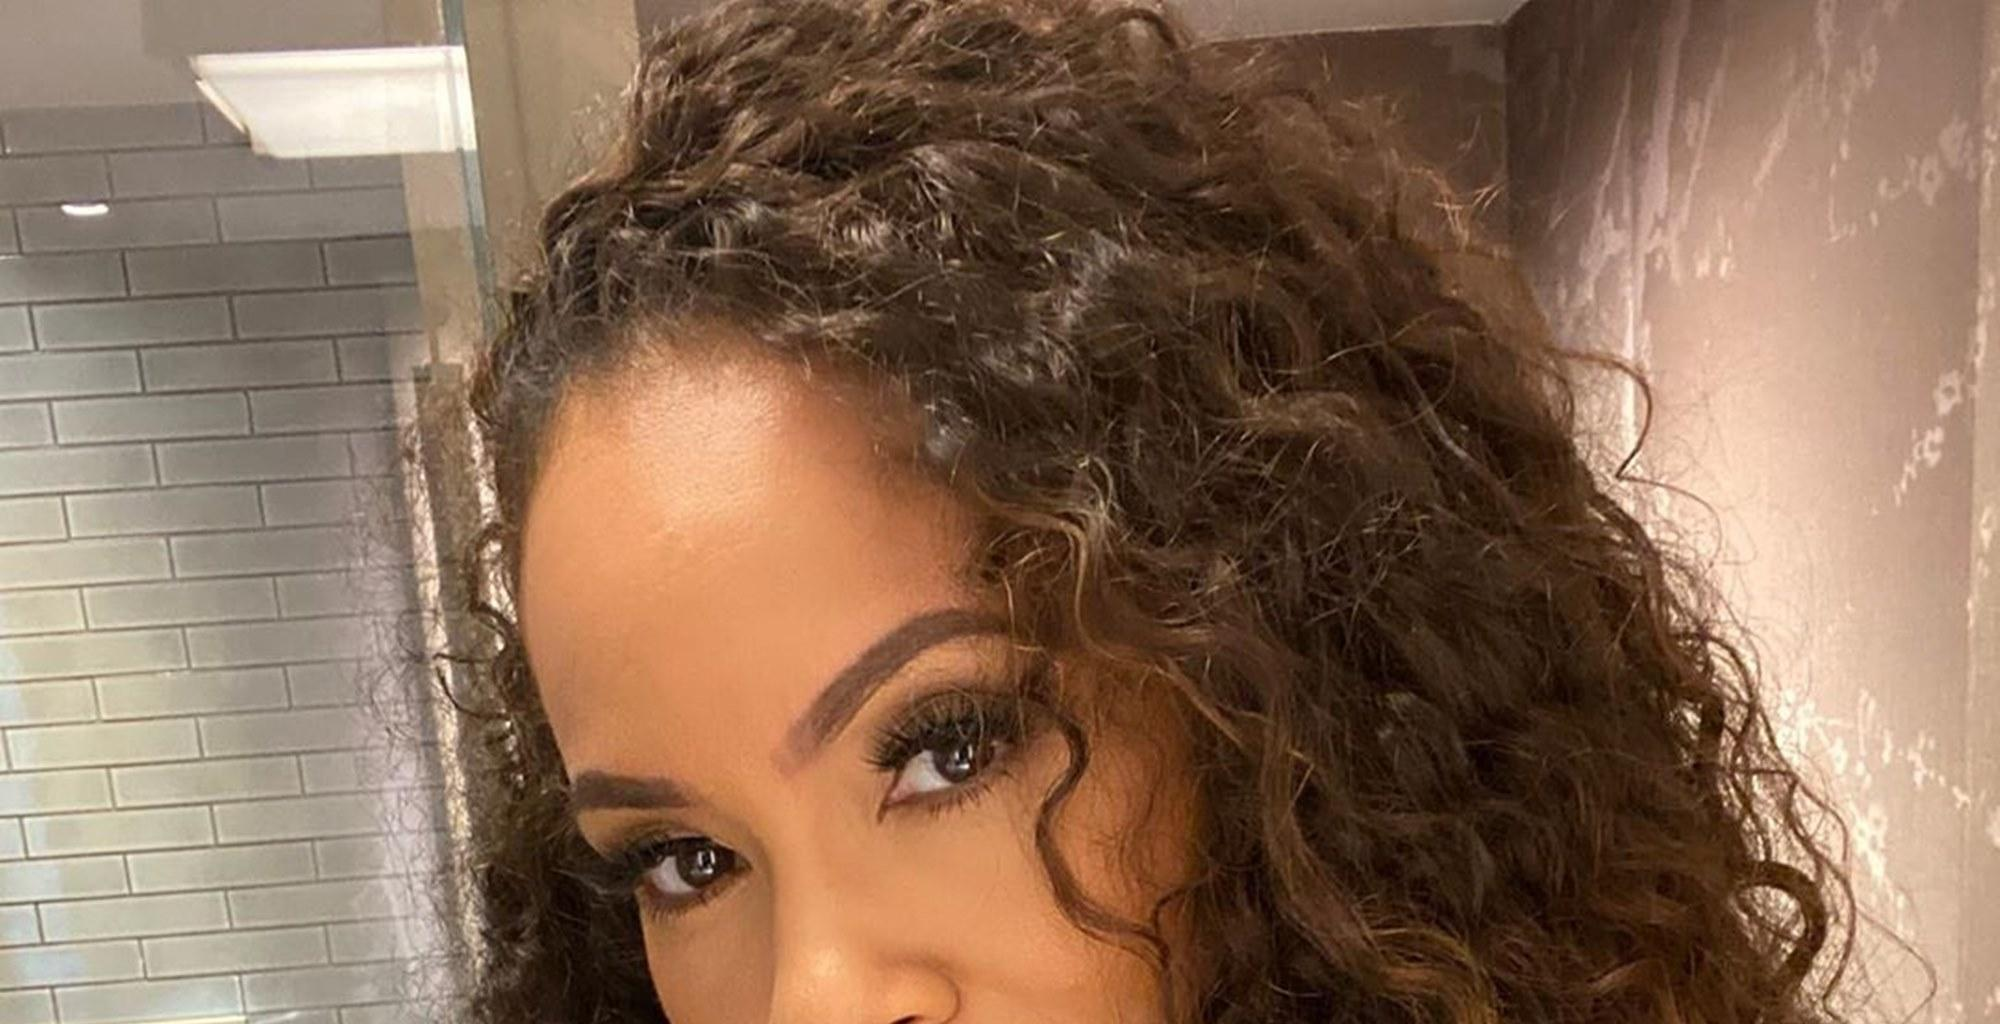 Evelyn Lozada Enjoys The Snow With Her Children -- Shaniece Hairston And Carl Leo Crawford -- In New Photos After Finding Jesus Chris; 'Basketball Wives' Fans Are Obsessed With Her Stunning Daughter